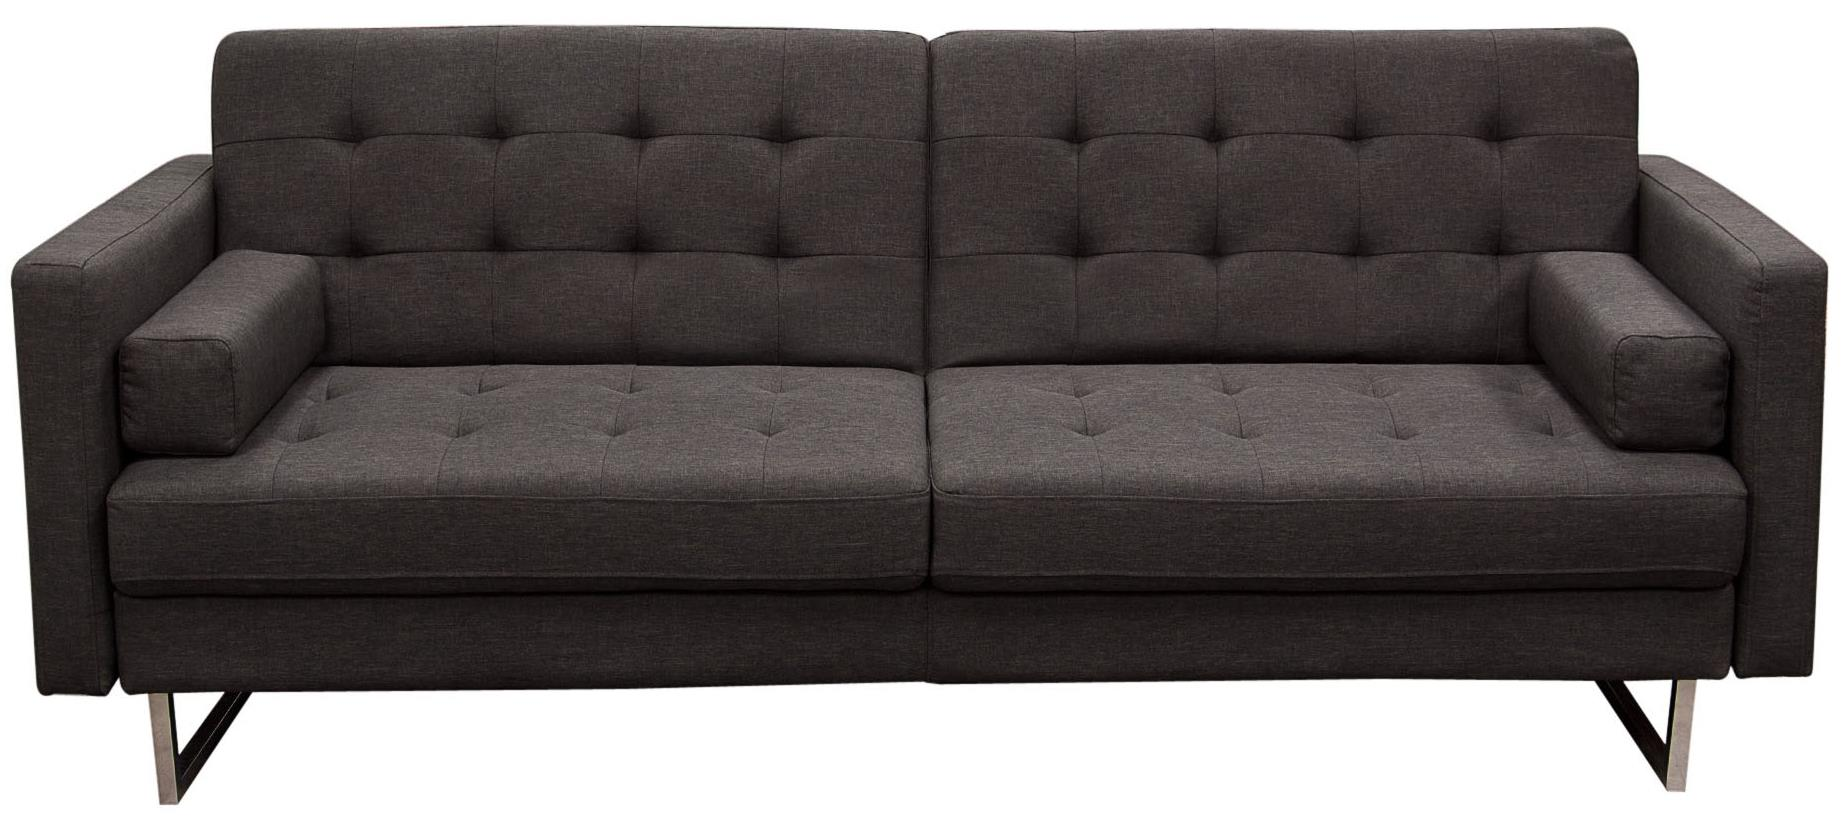 Diamond Sofa Opus Convertible Tufted Sofa - Item Number: OPUSSOCH